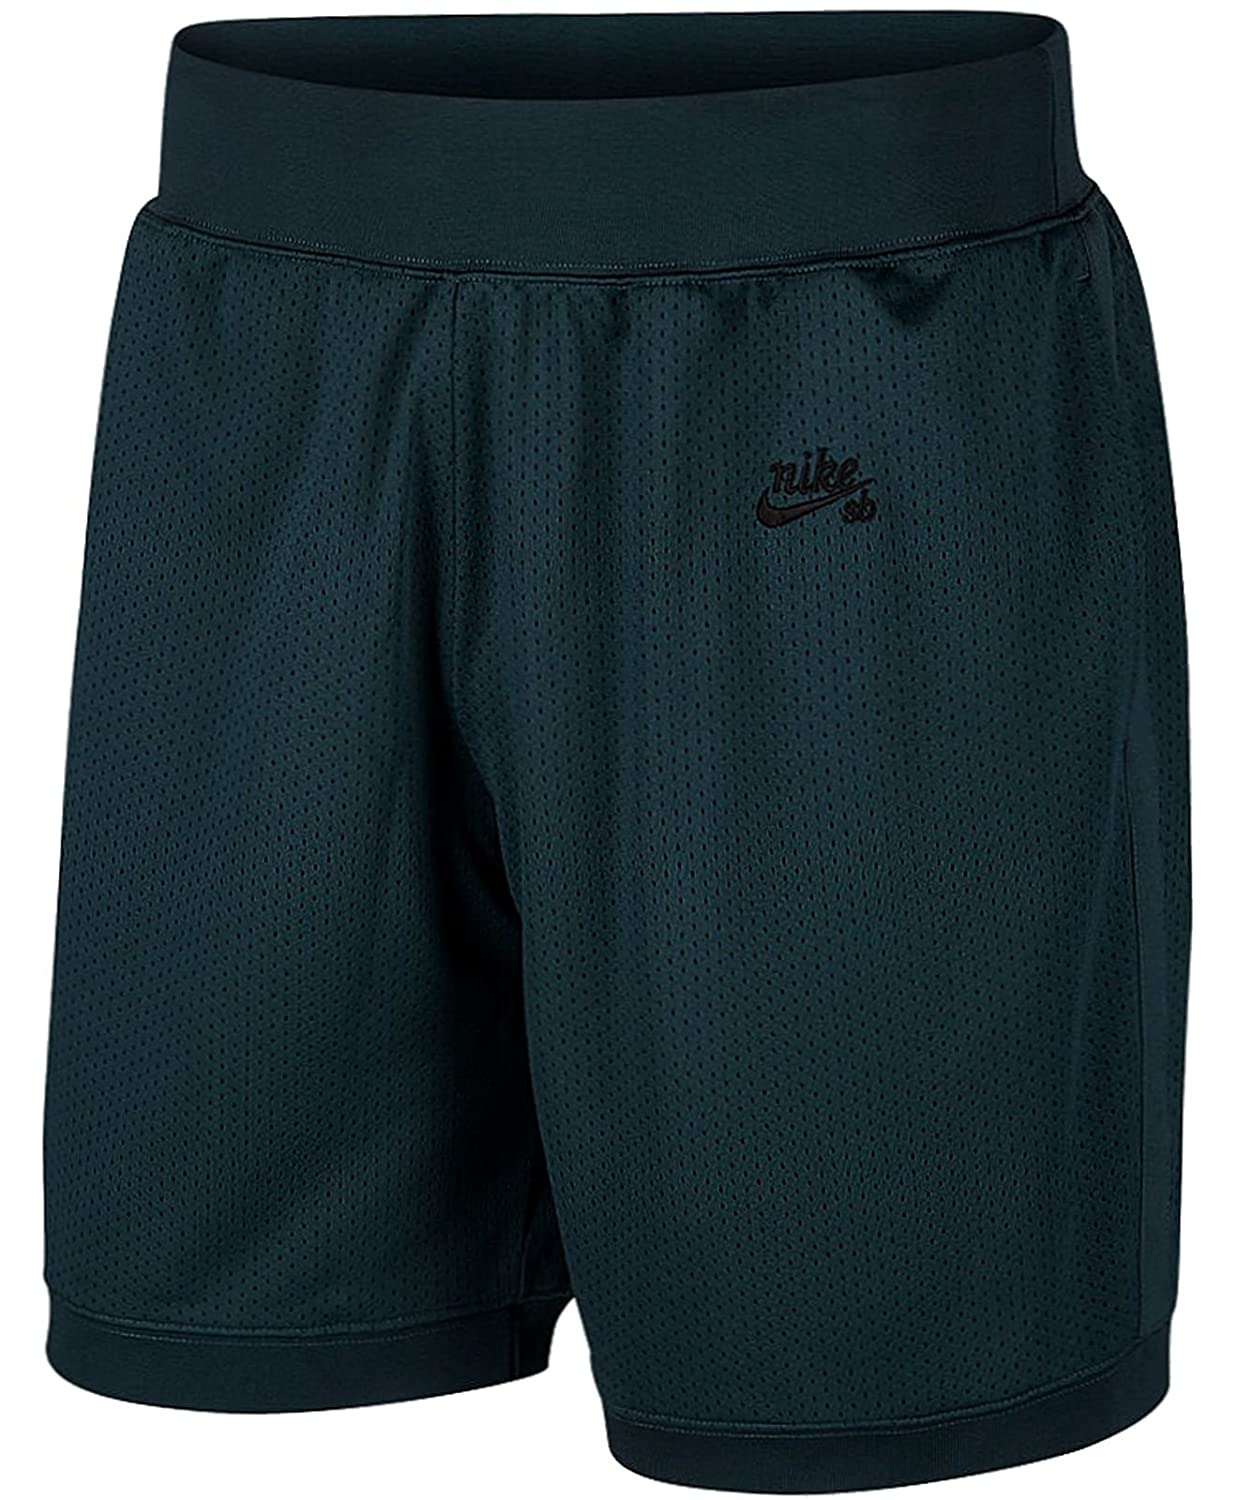 Nike M Nk Sb Dry Short Court Hrtge - deep jungle schwarz